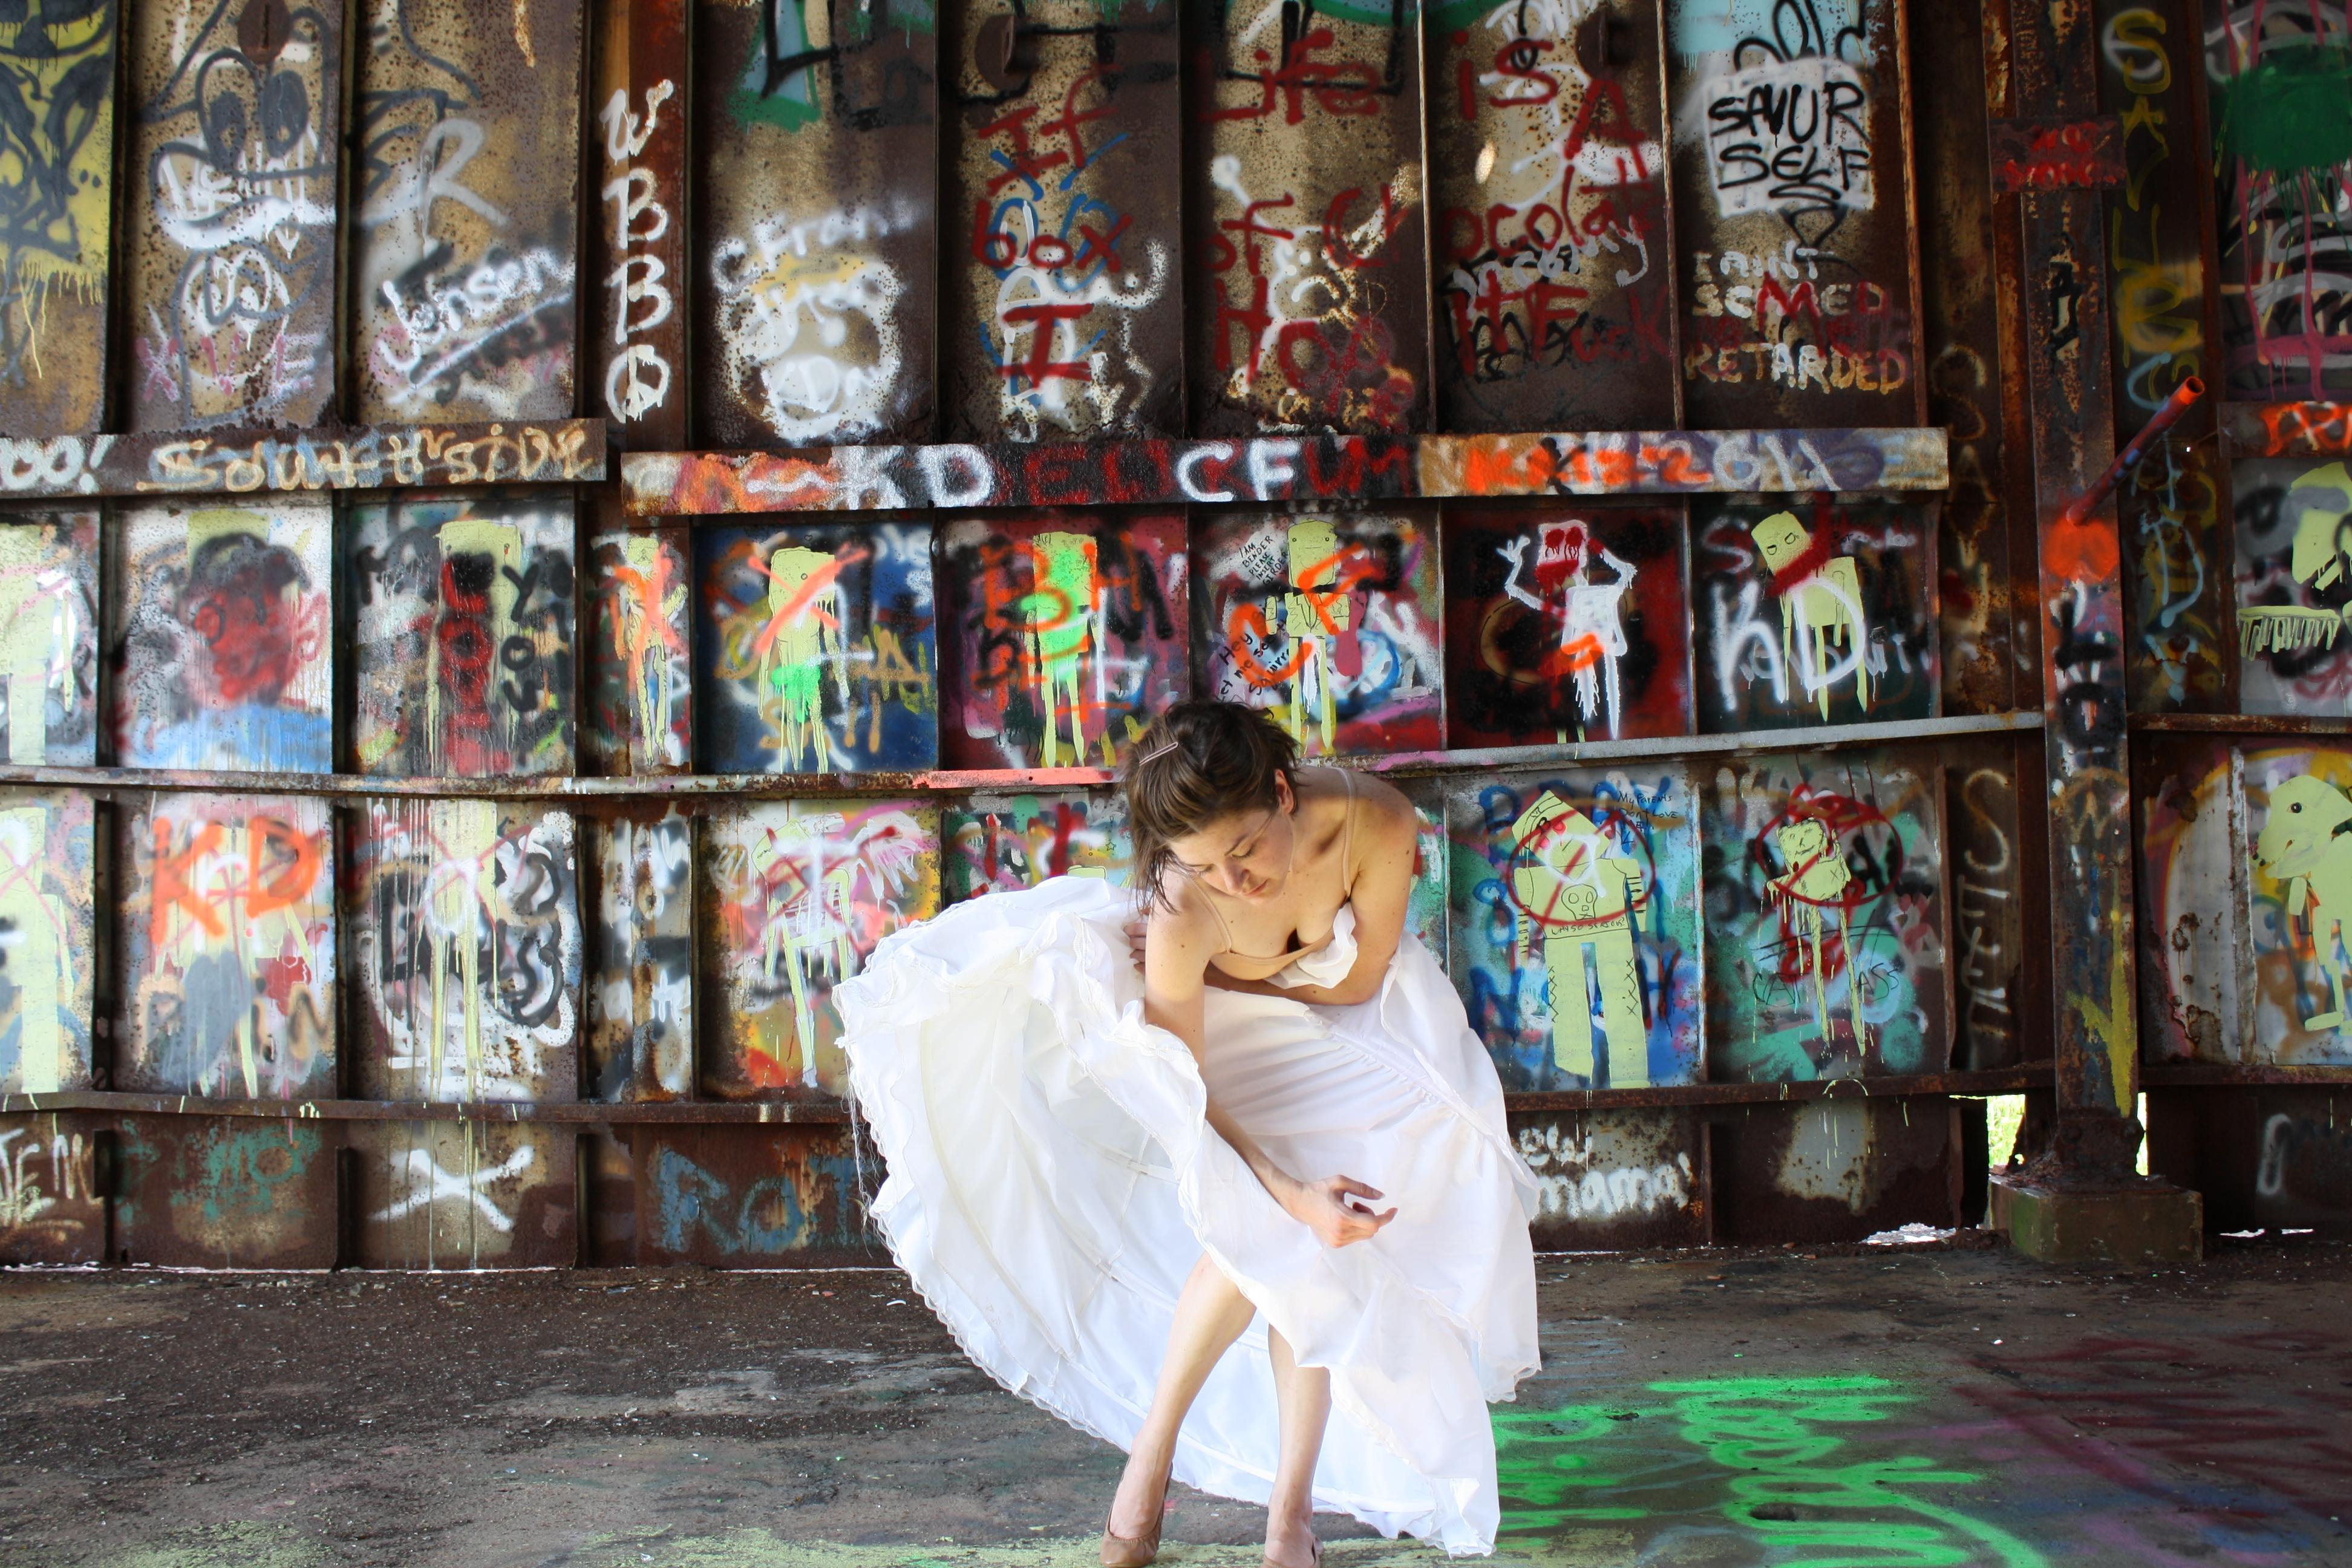 In an urban space filled with graffiti, a light-skinned brunette in a flowy white skirt gracefully bends her body forward in a dance-like motion.